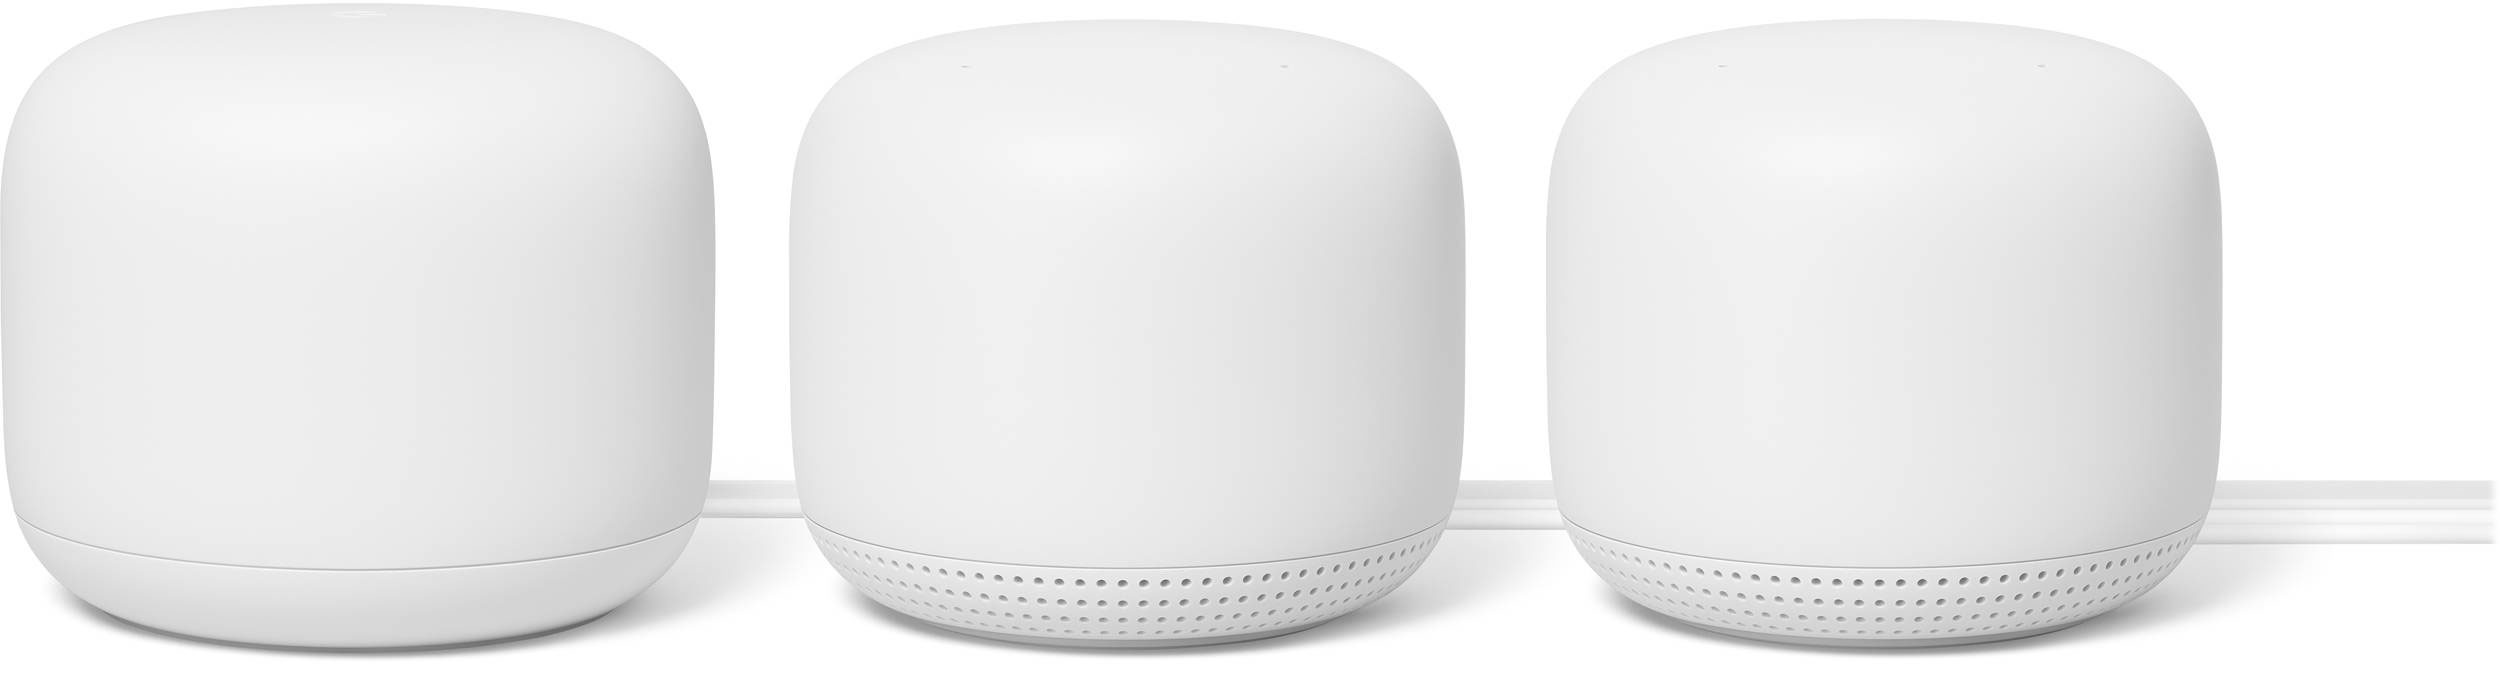 Google Nest Wifi Router and Two Points